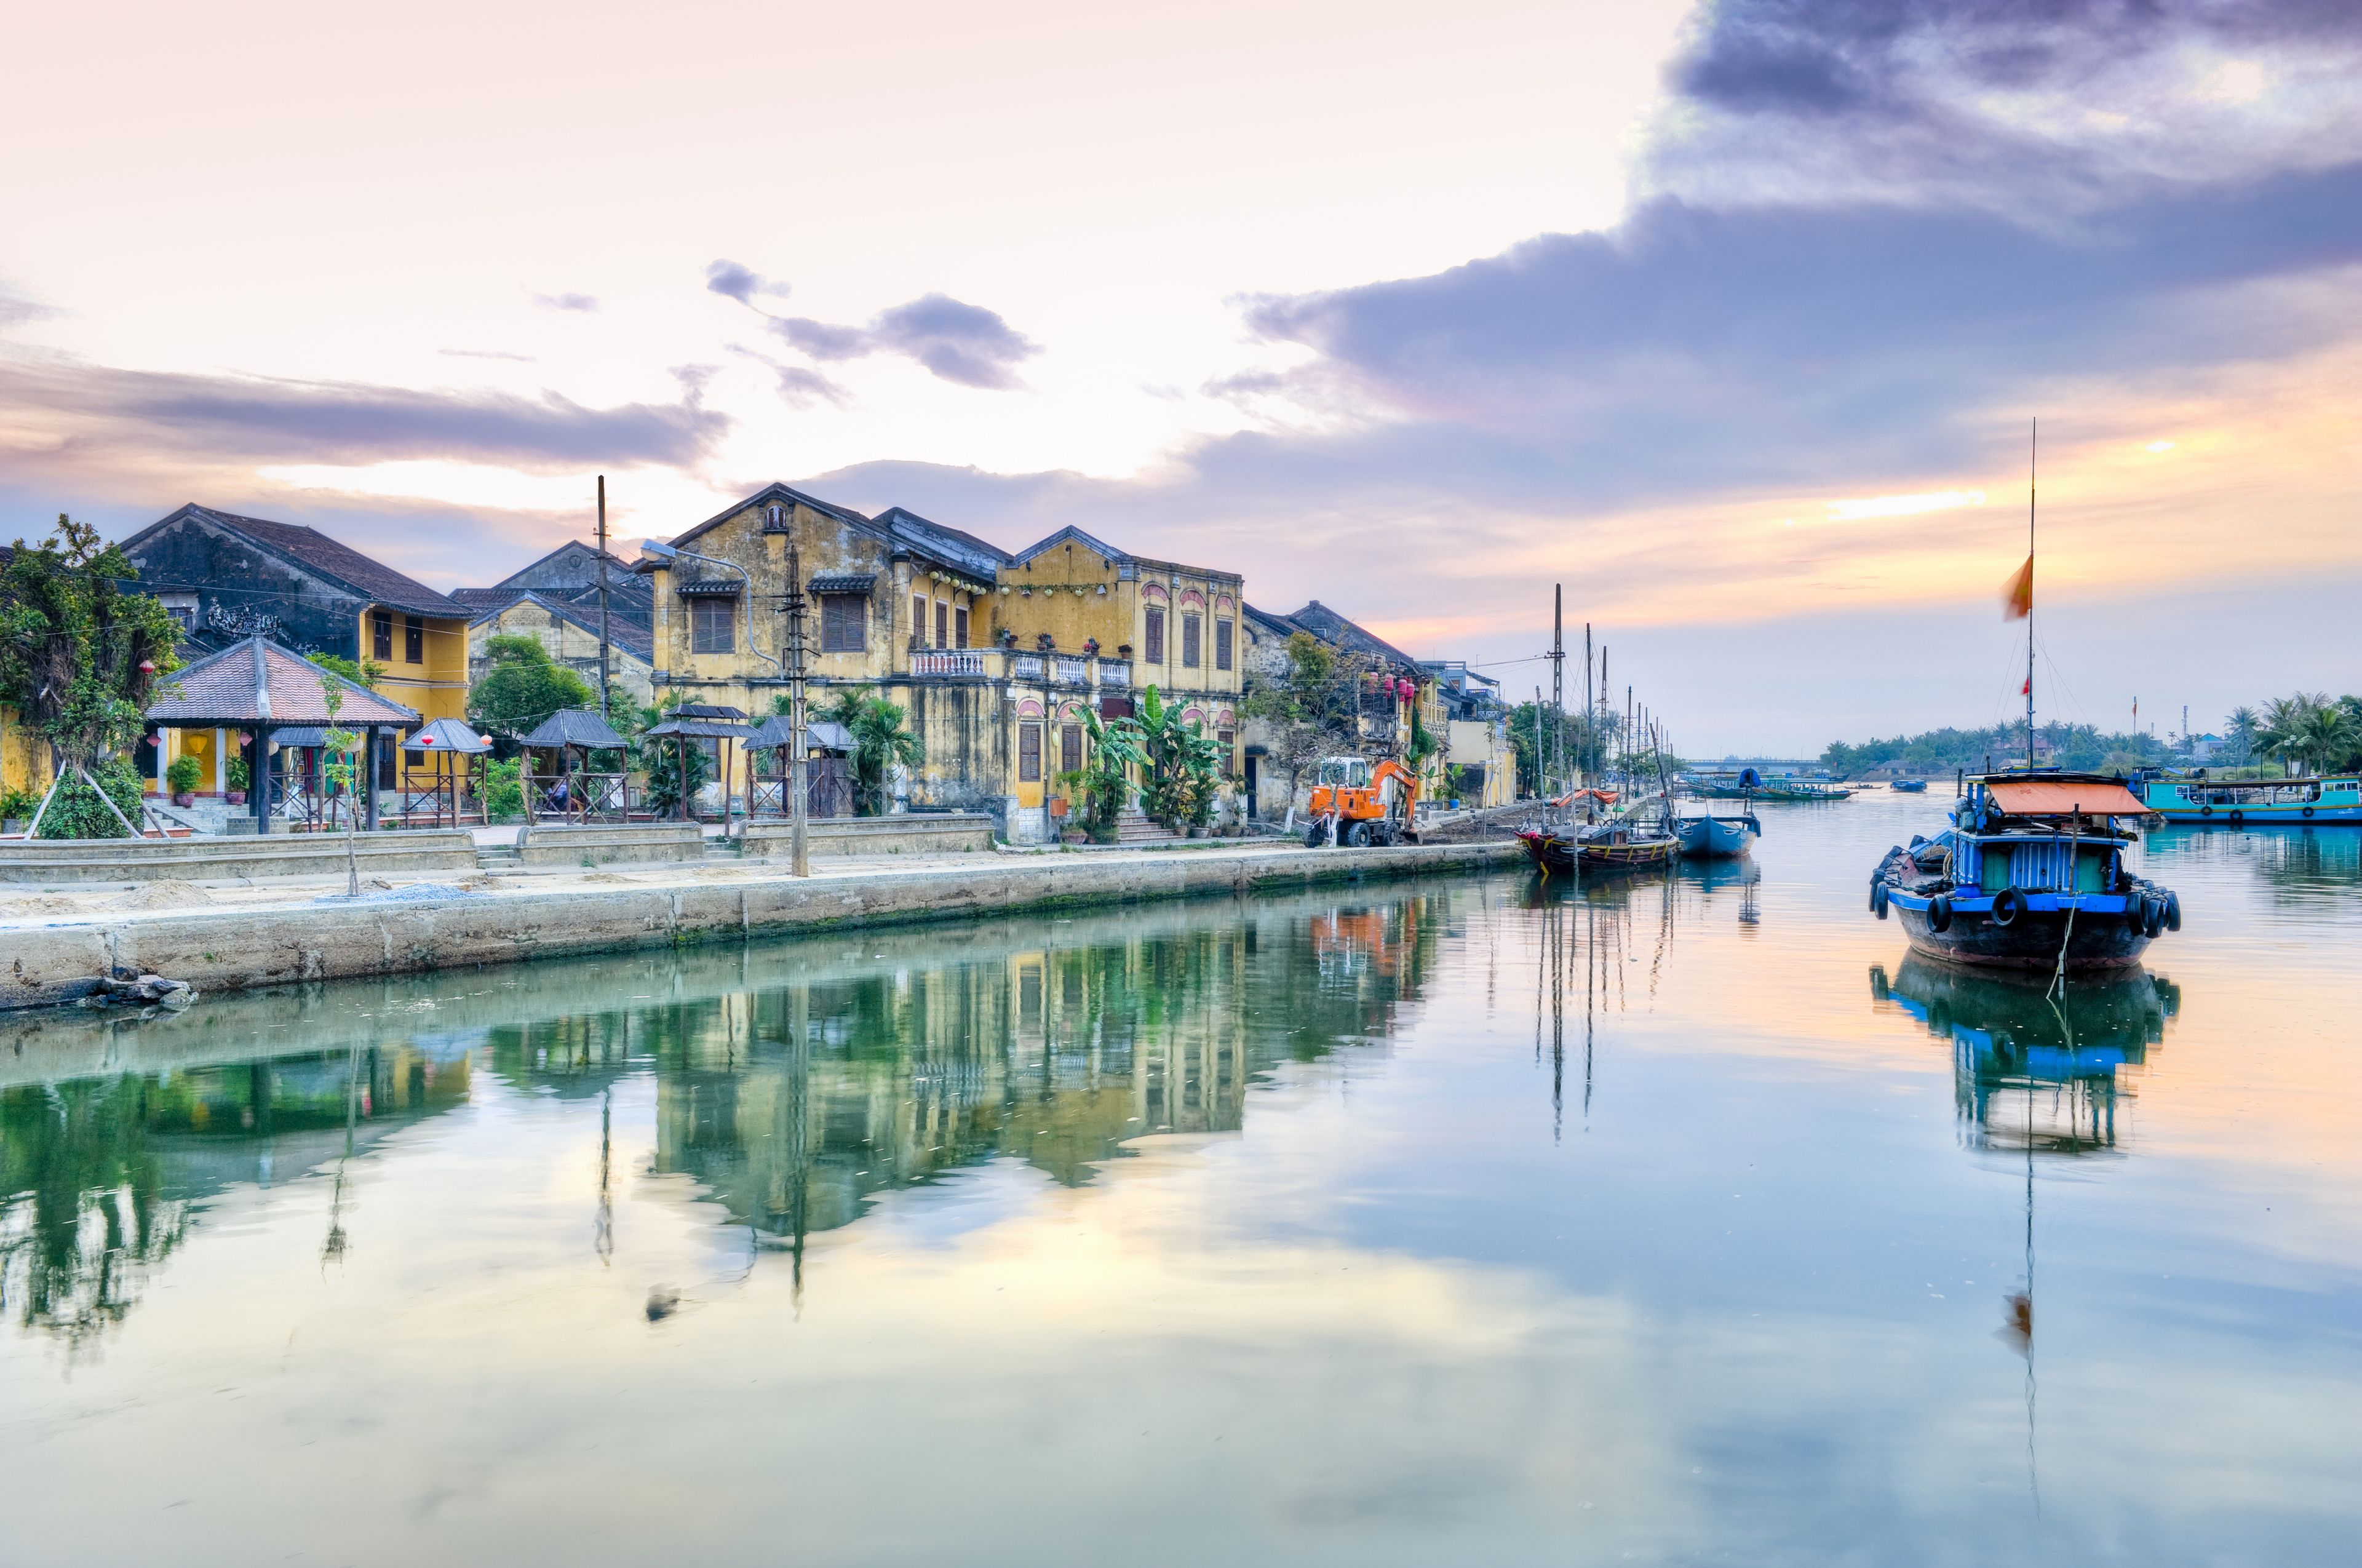 Vietnam - Hoi An - Wide view of a boat and a couple of buildings reflected in water.jpg